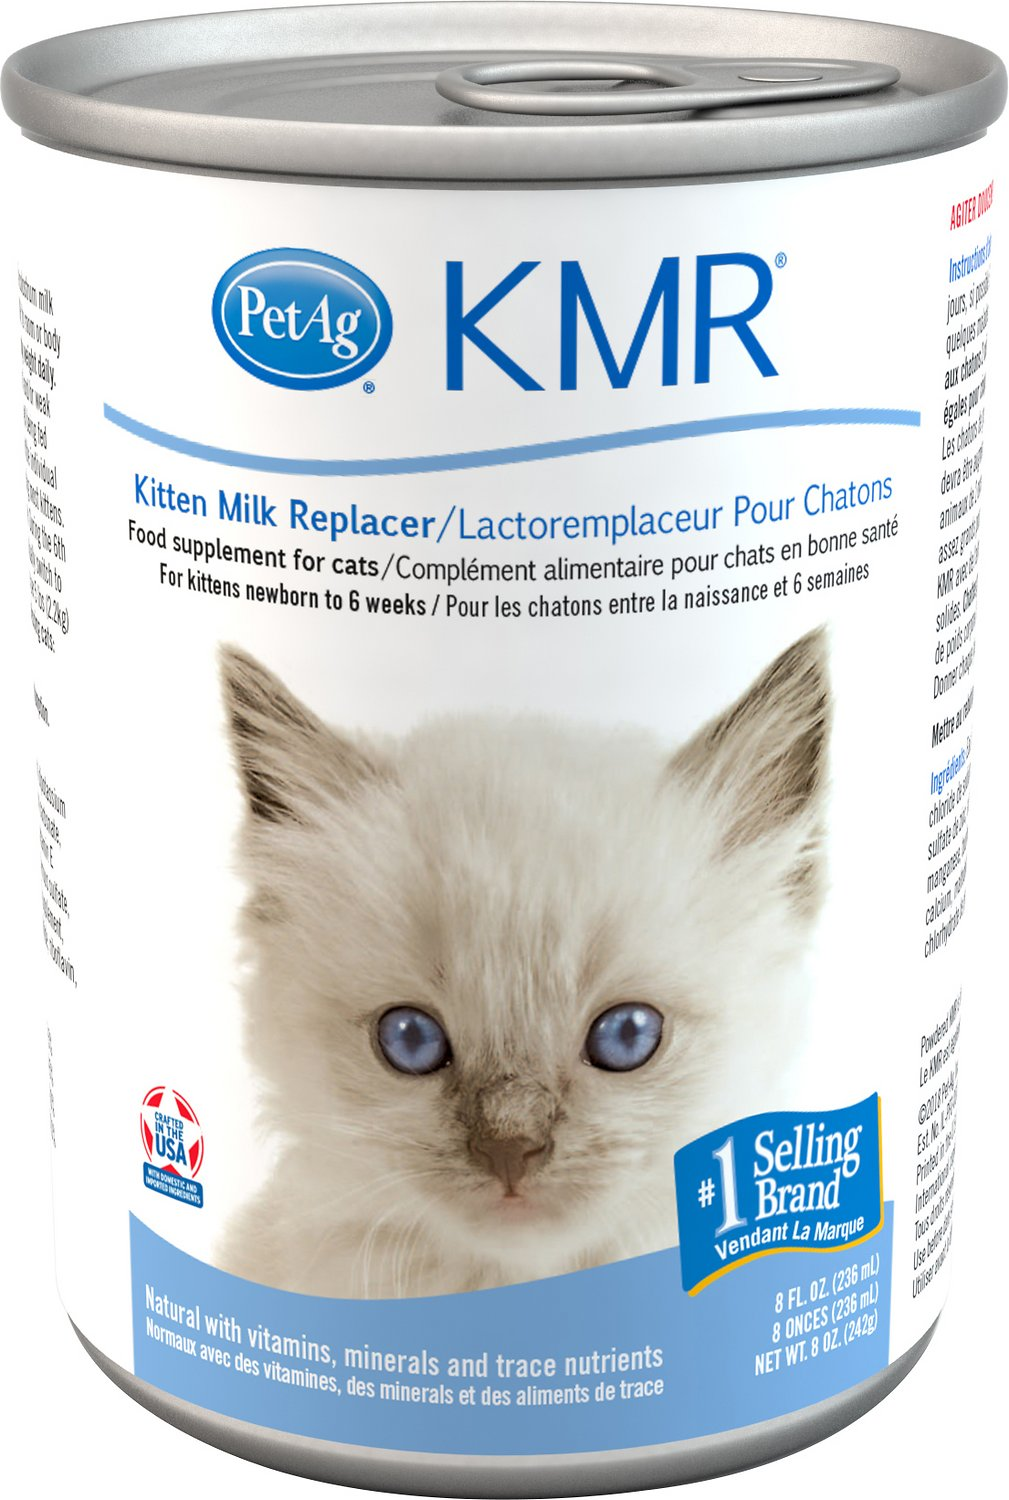 Petag Kmr Kitten Milk Replacer Liquid Free Shipping Chewy